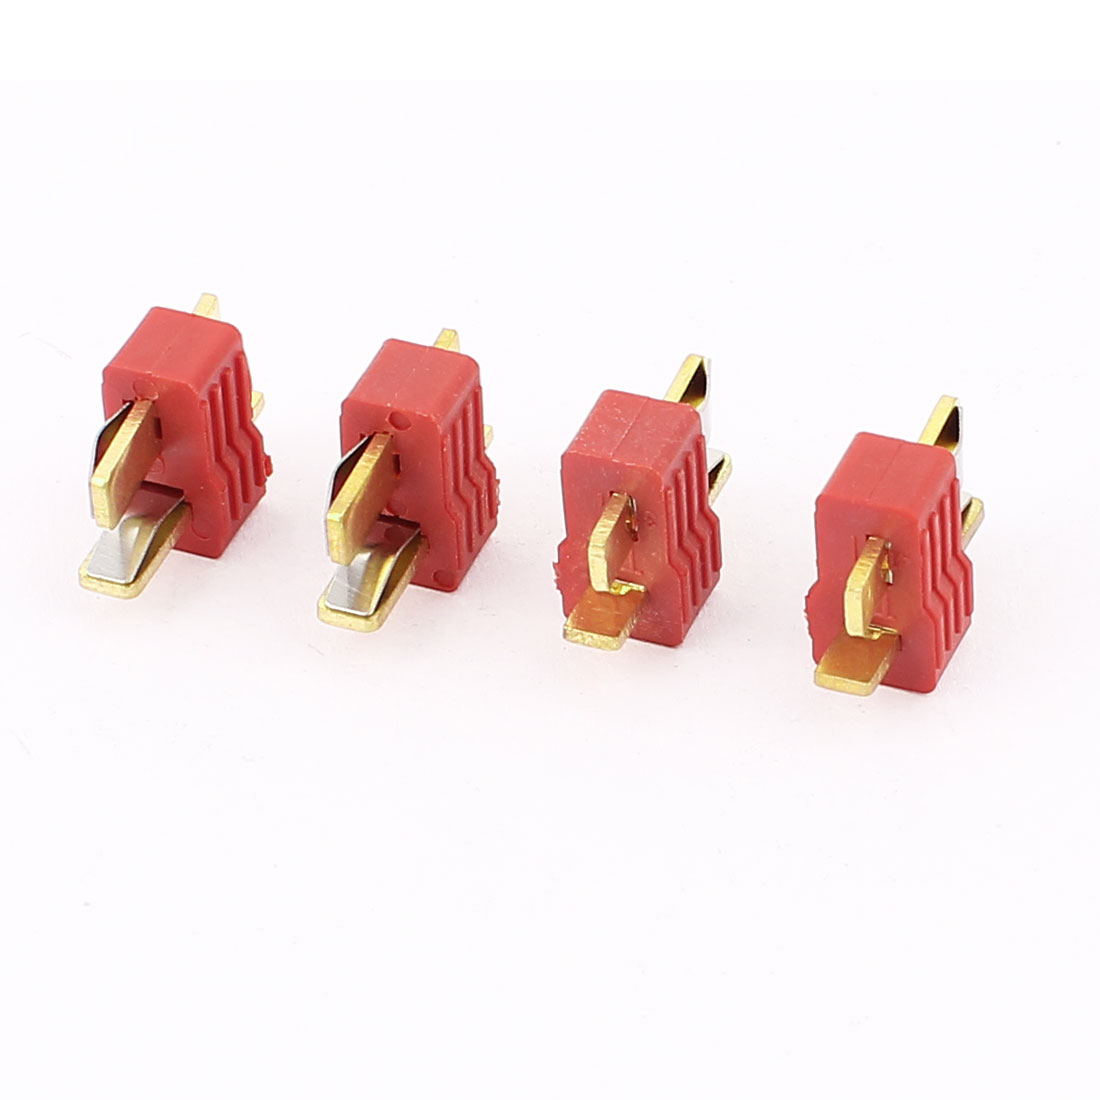 4 Pcs Red Gold Tone T Male Connector for RC DIY Model Toys